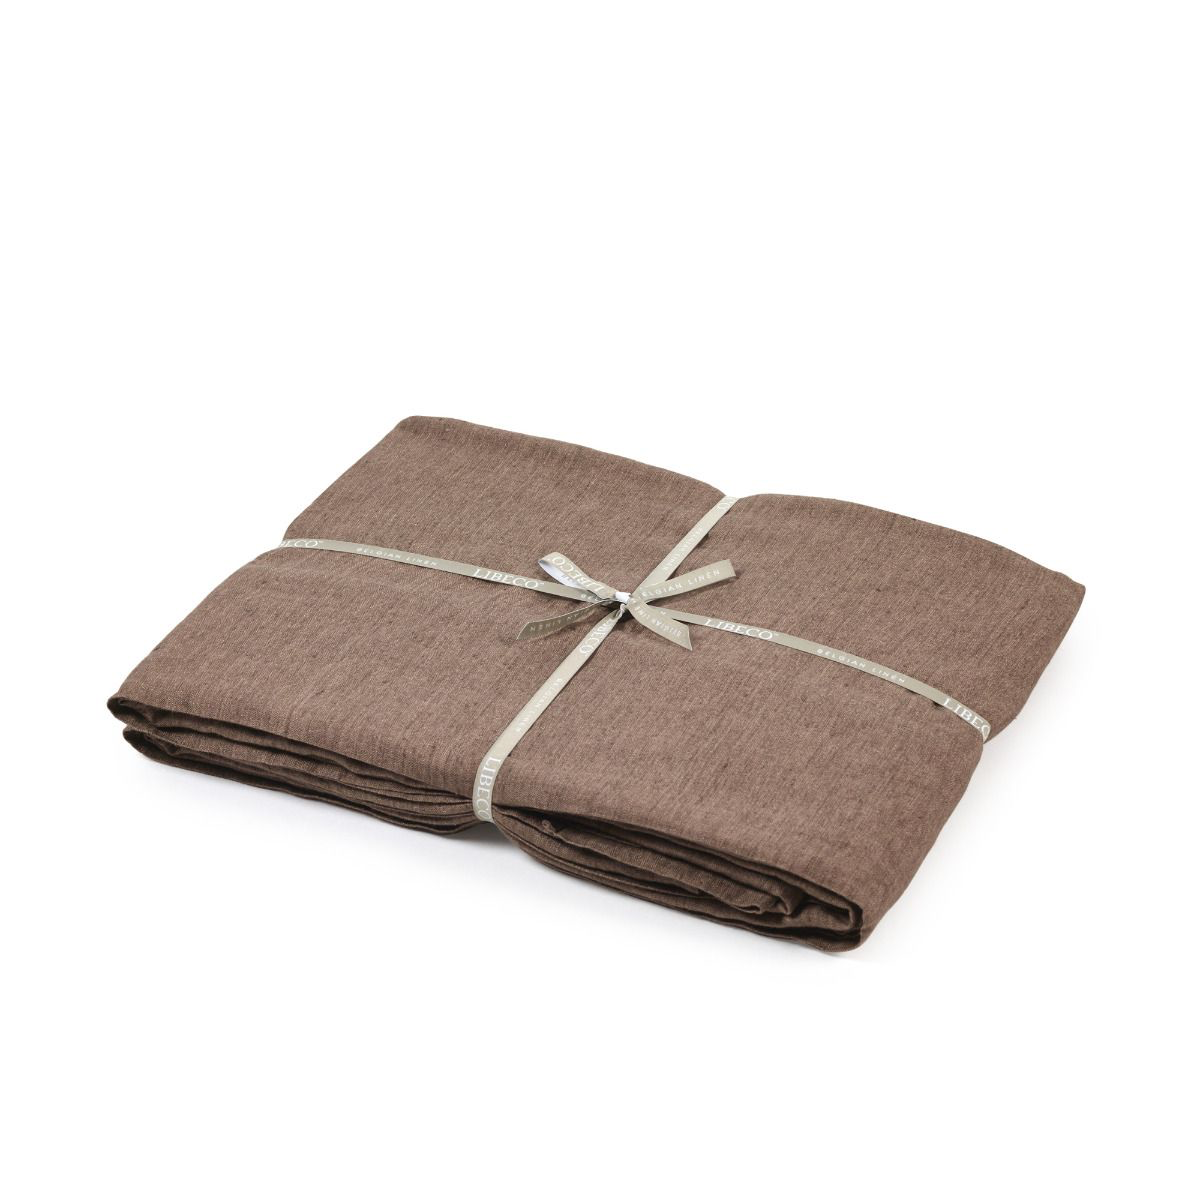 nottinghill flat & fitted sheets - adorn.house